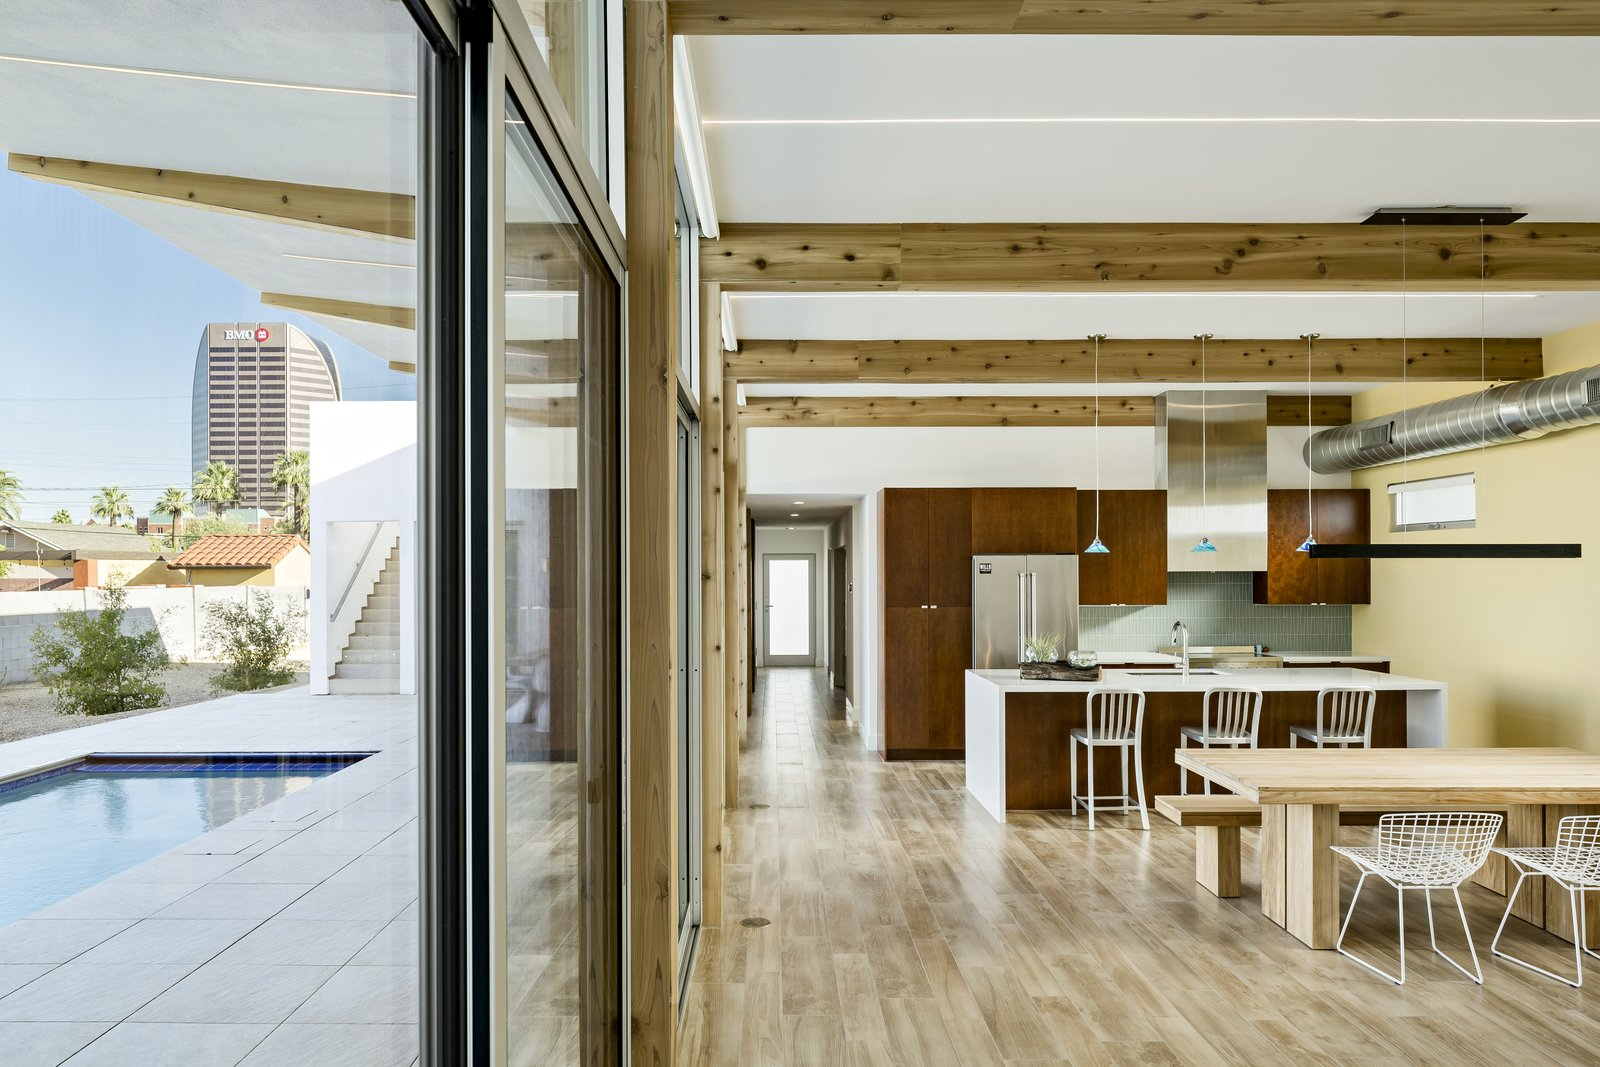 The wood beams flow from inside to outside and angle up to capture a view of the tallest tower in the area. Tagged: Dining Room, Ceiling Lighting, Table, Bench, Pendant Lighting, and Porcelain Tile Floor.  Sol House by The Ranch Mine